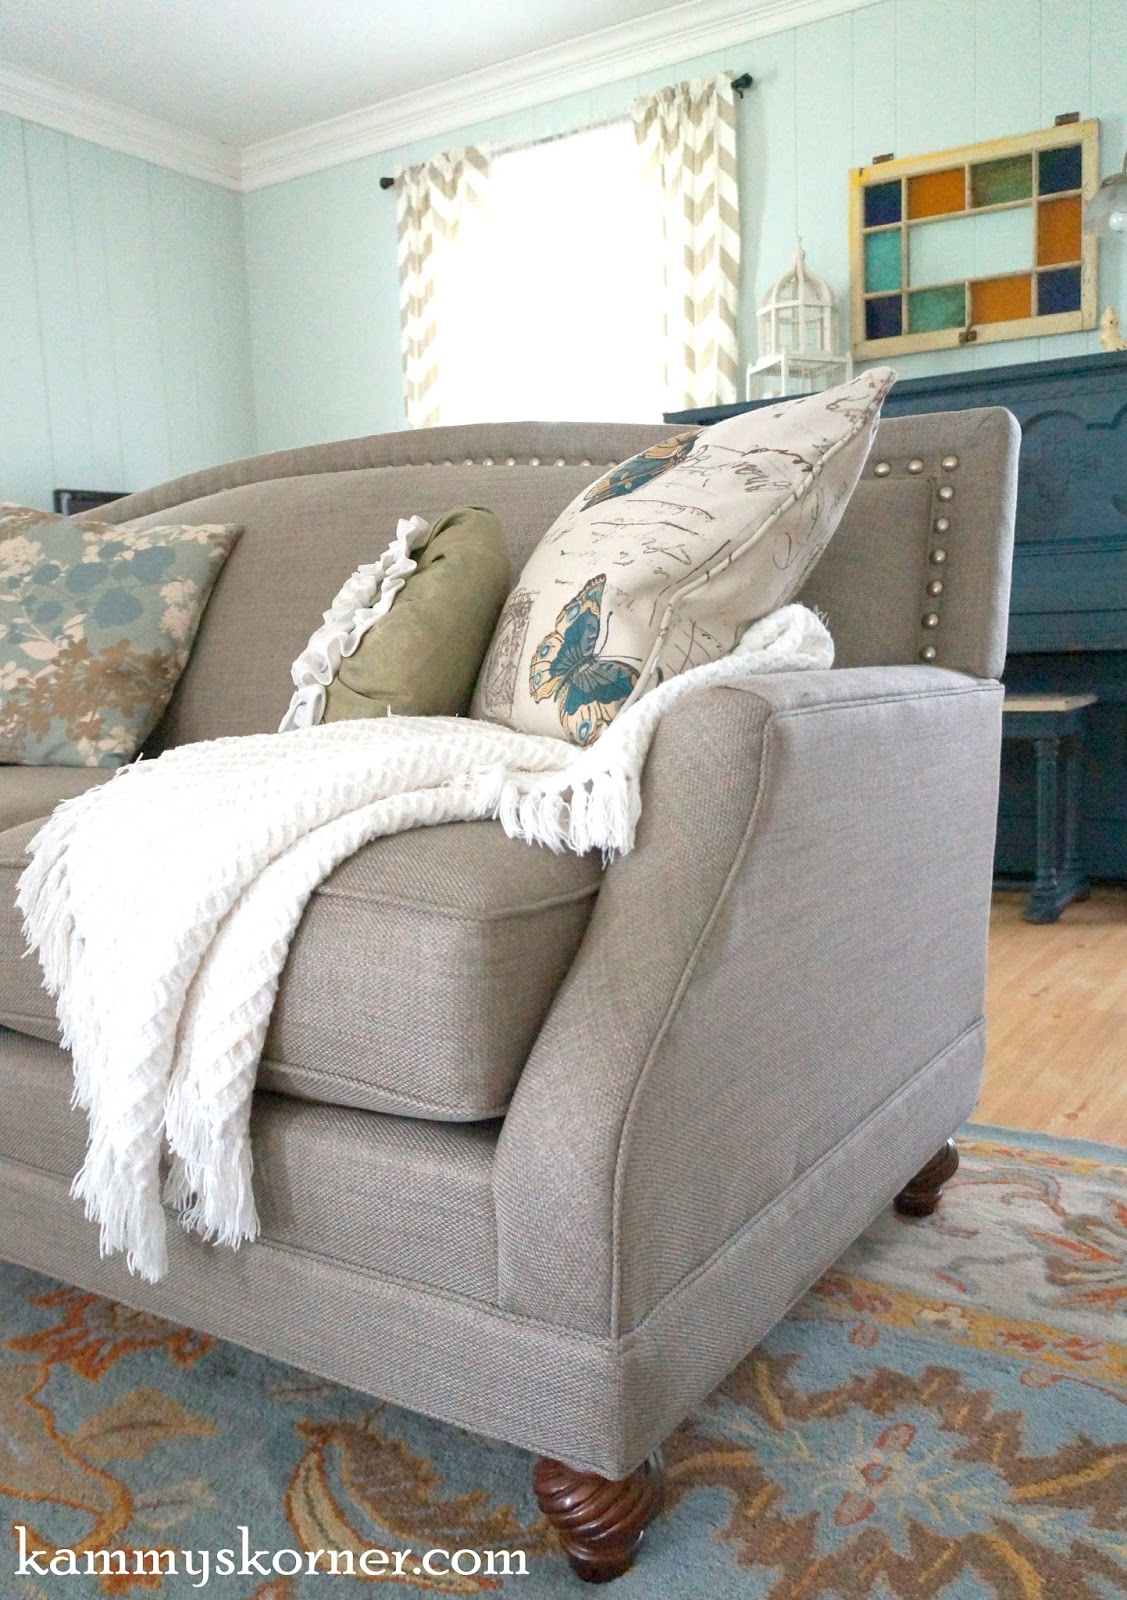 Kammy\'s Korner: My New Nail Head Trim Sofa!